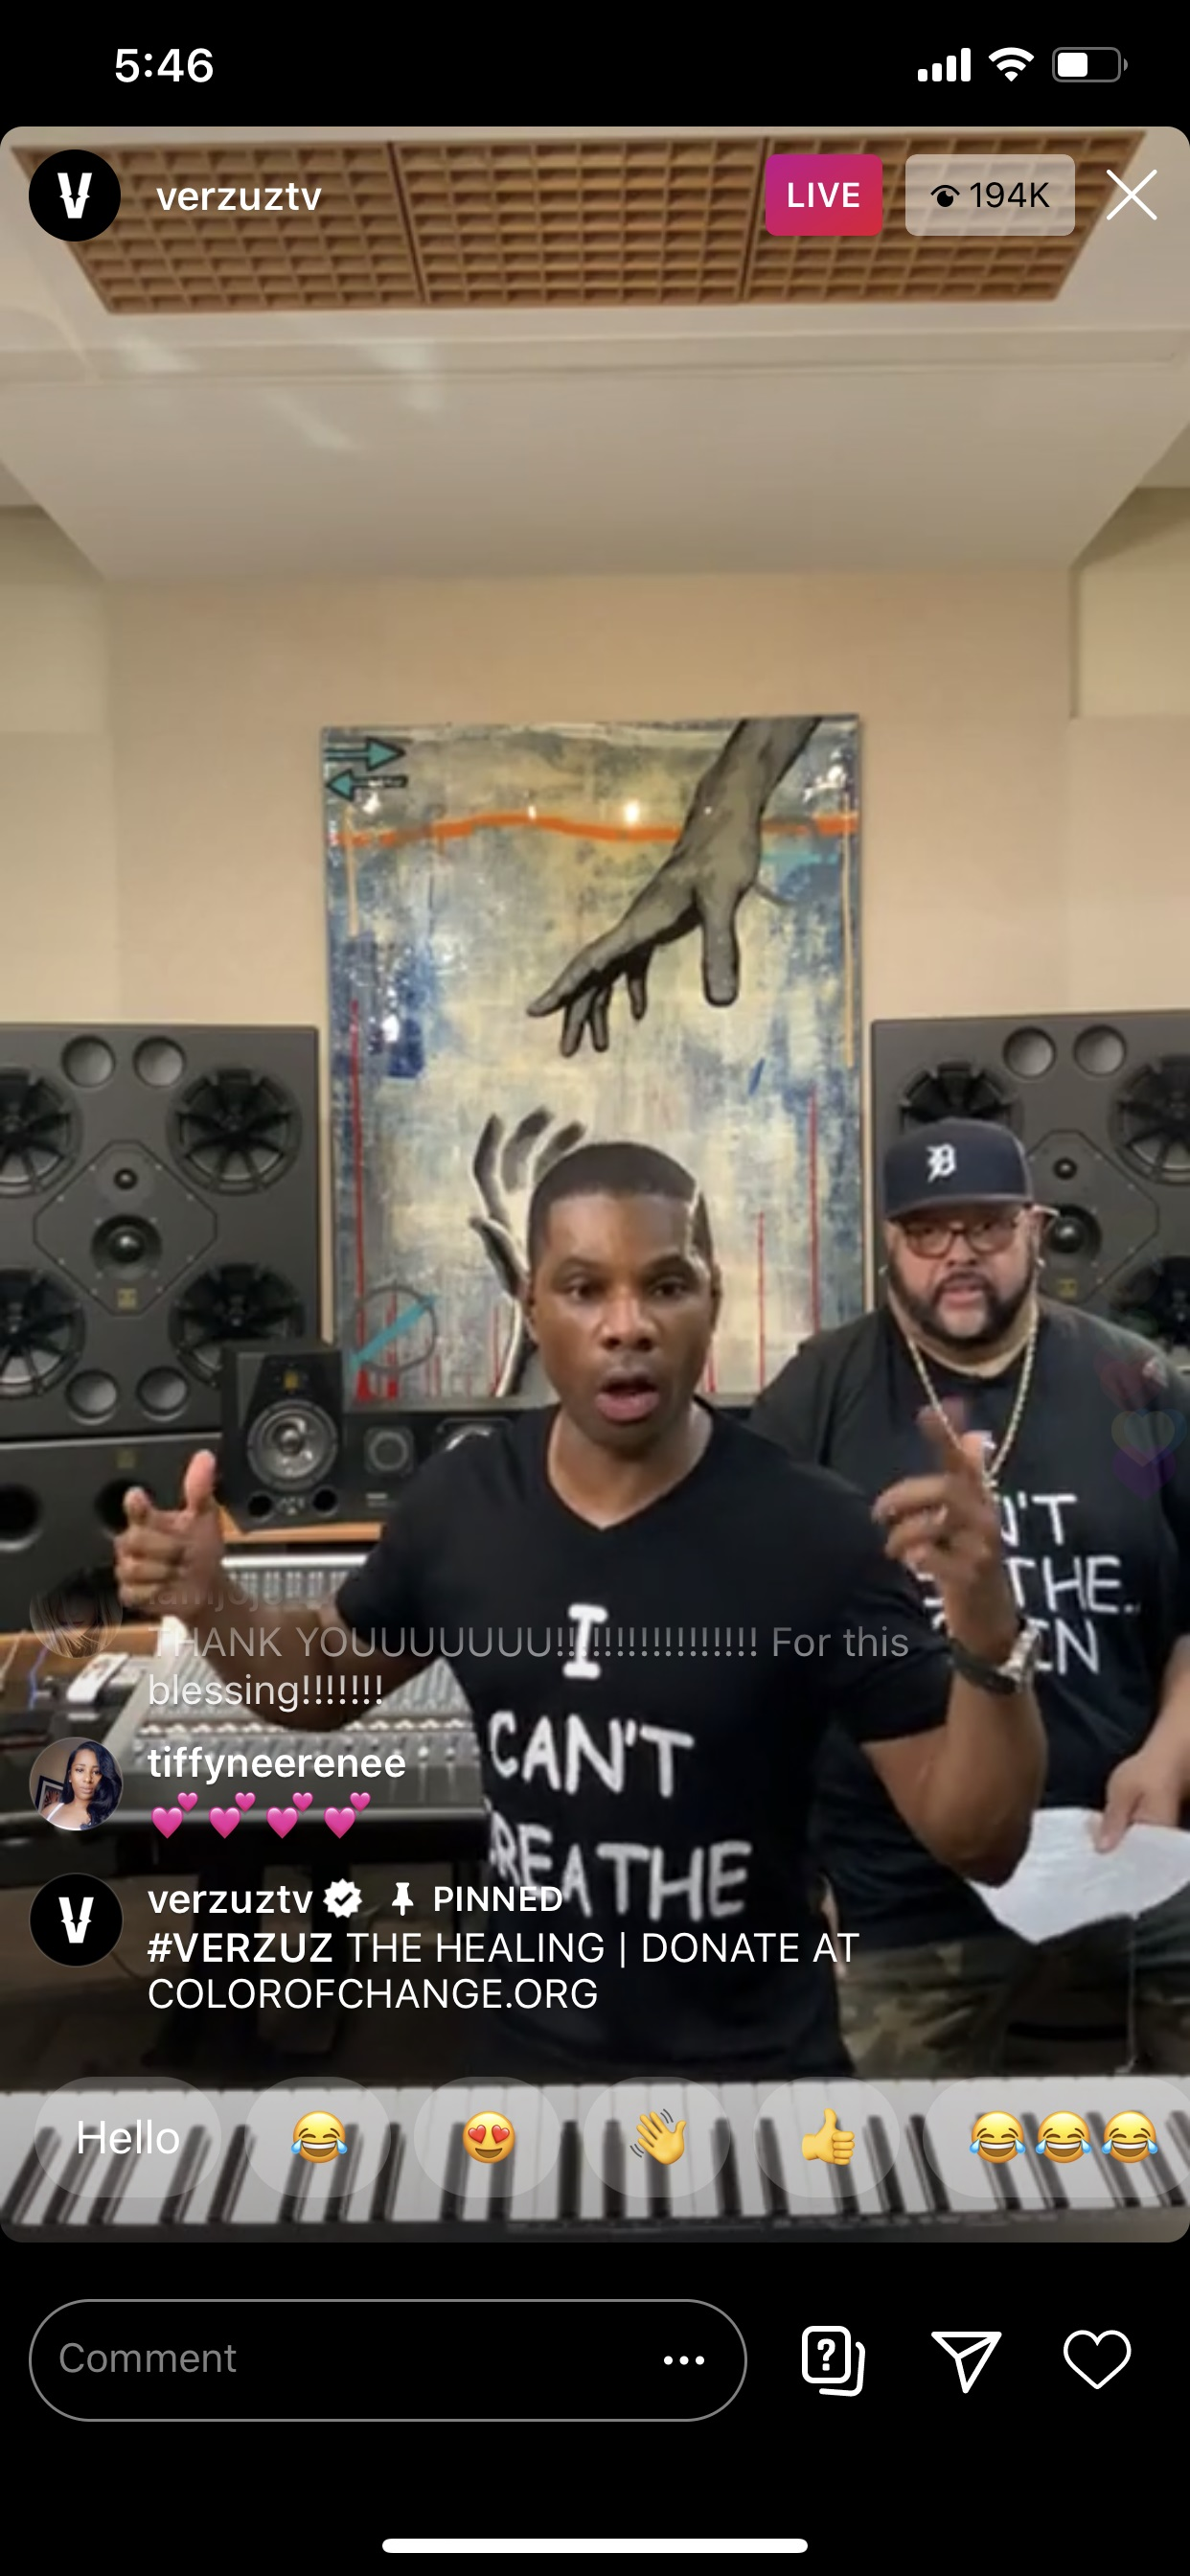 """Gospel artists Kirk Franklin and Fred Hammond wear """"I Can't Breathe Again"""" T-shirts during their Verzuz battle on Instagram Live on May 31, 2020."""